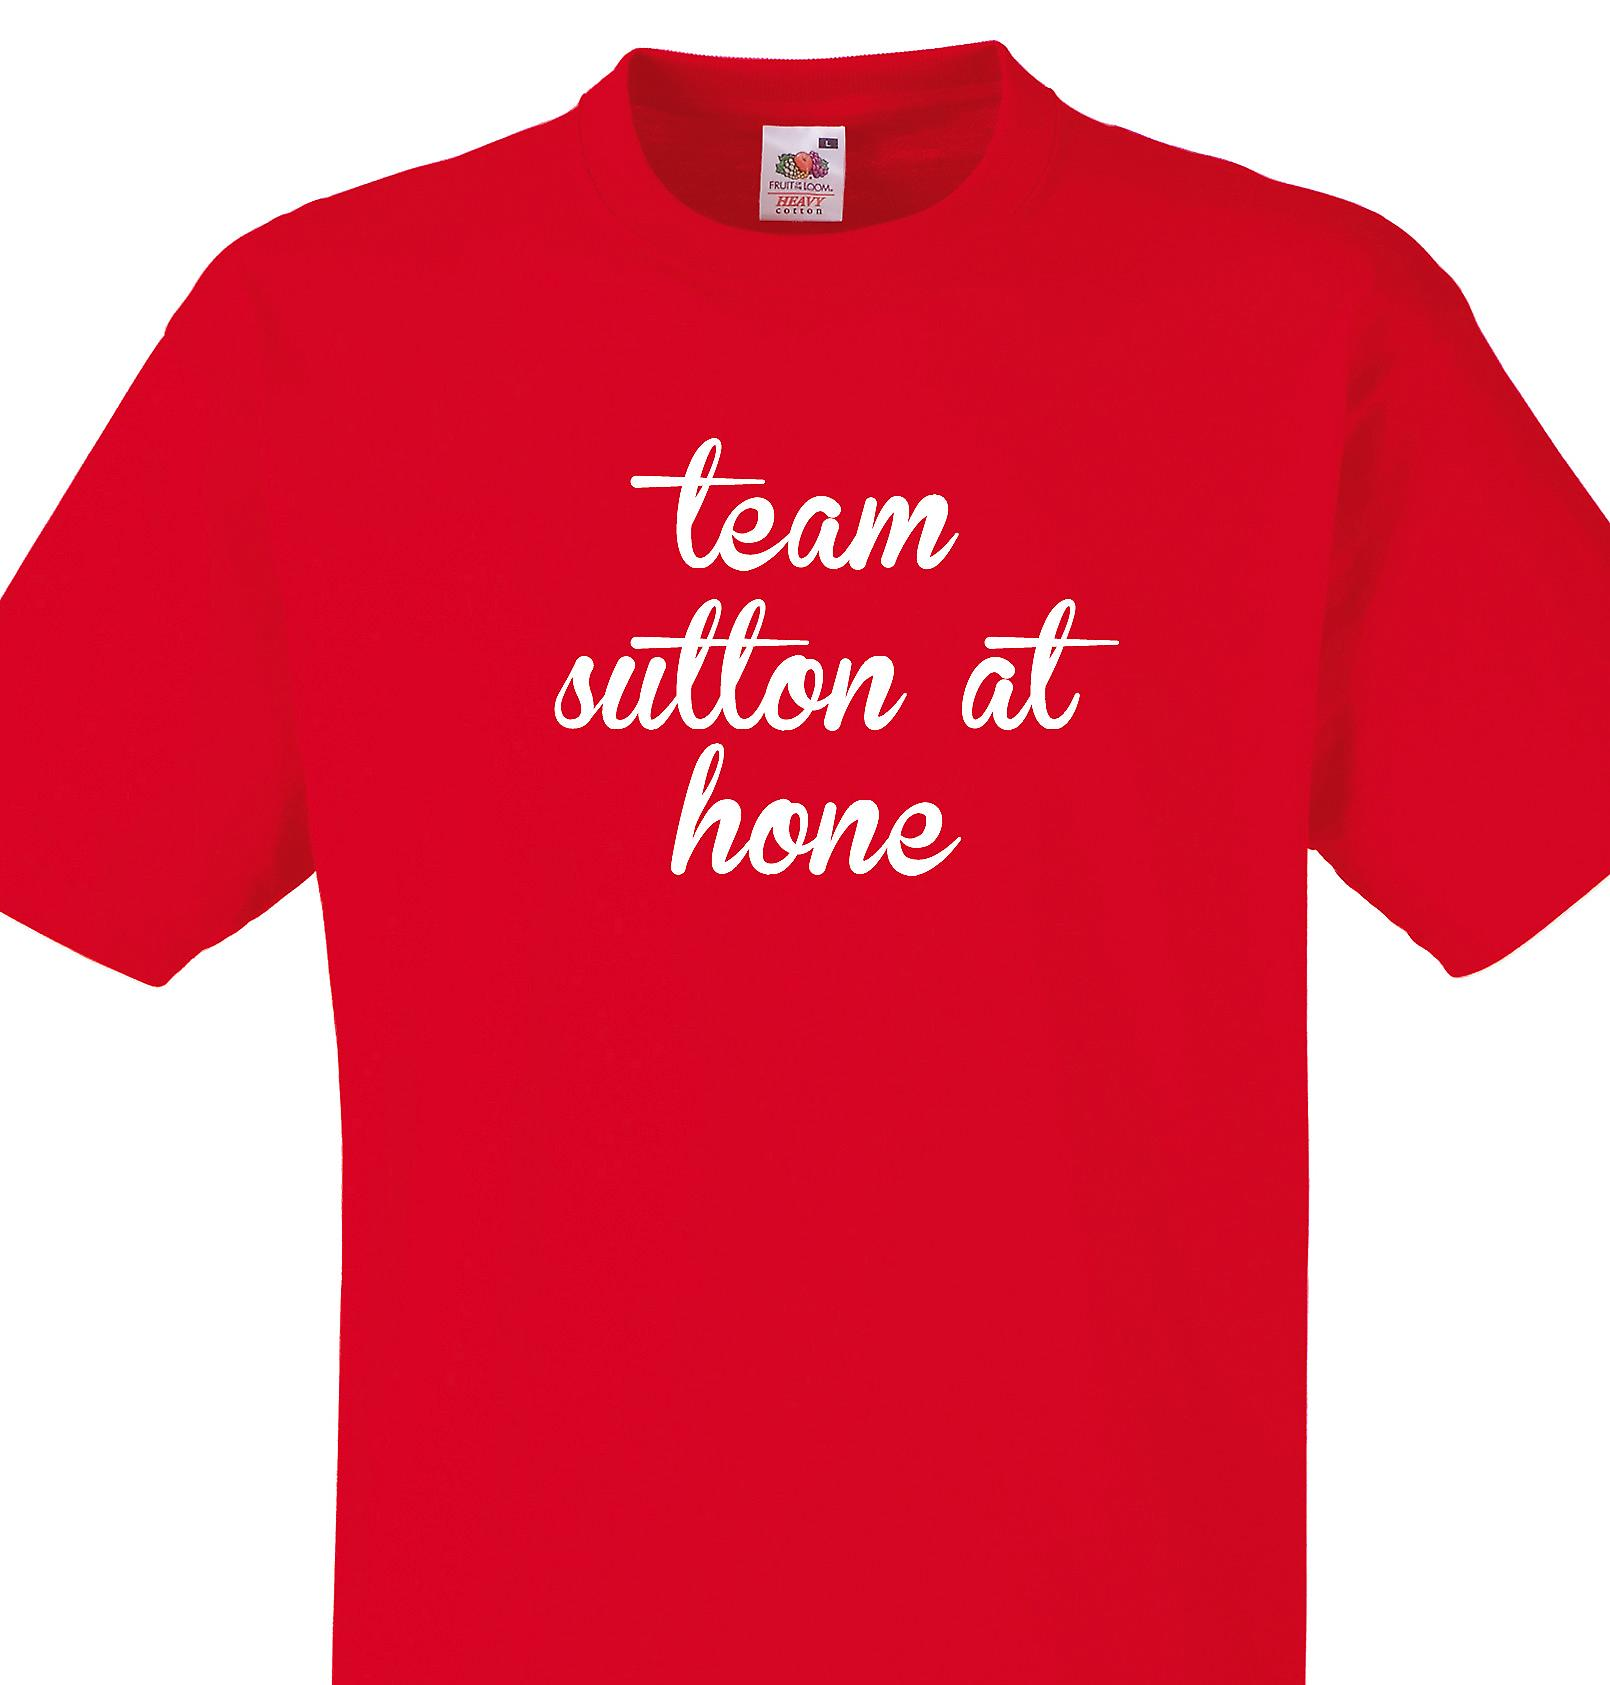 Team Sutton at hone Red T shirt